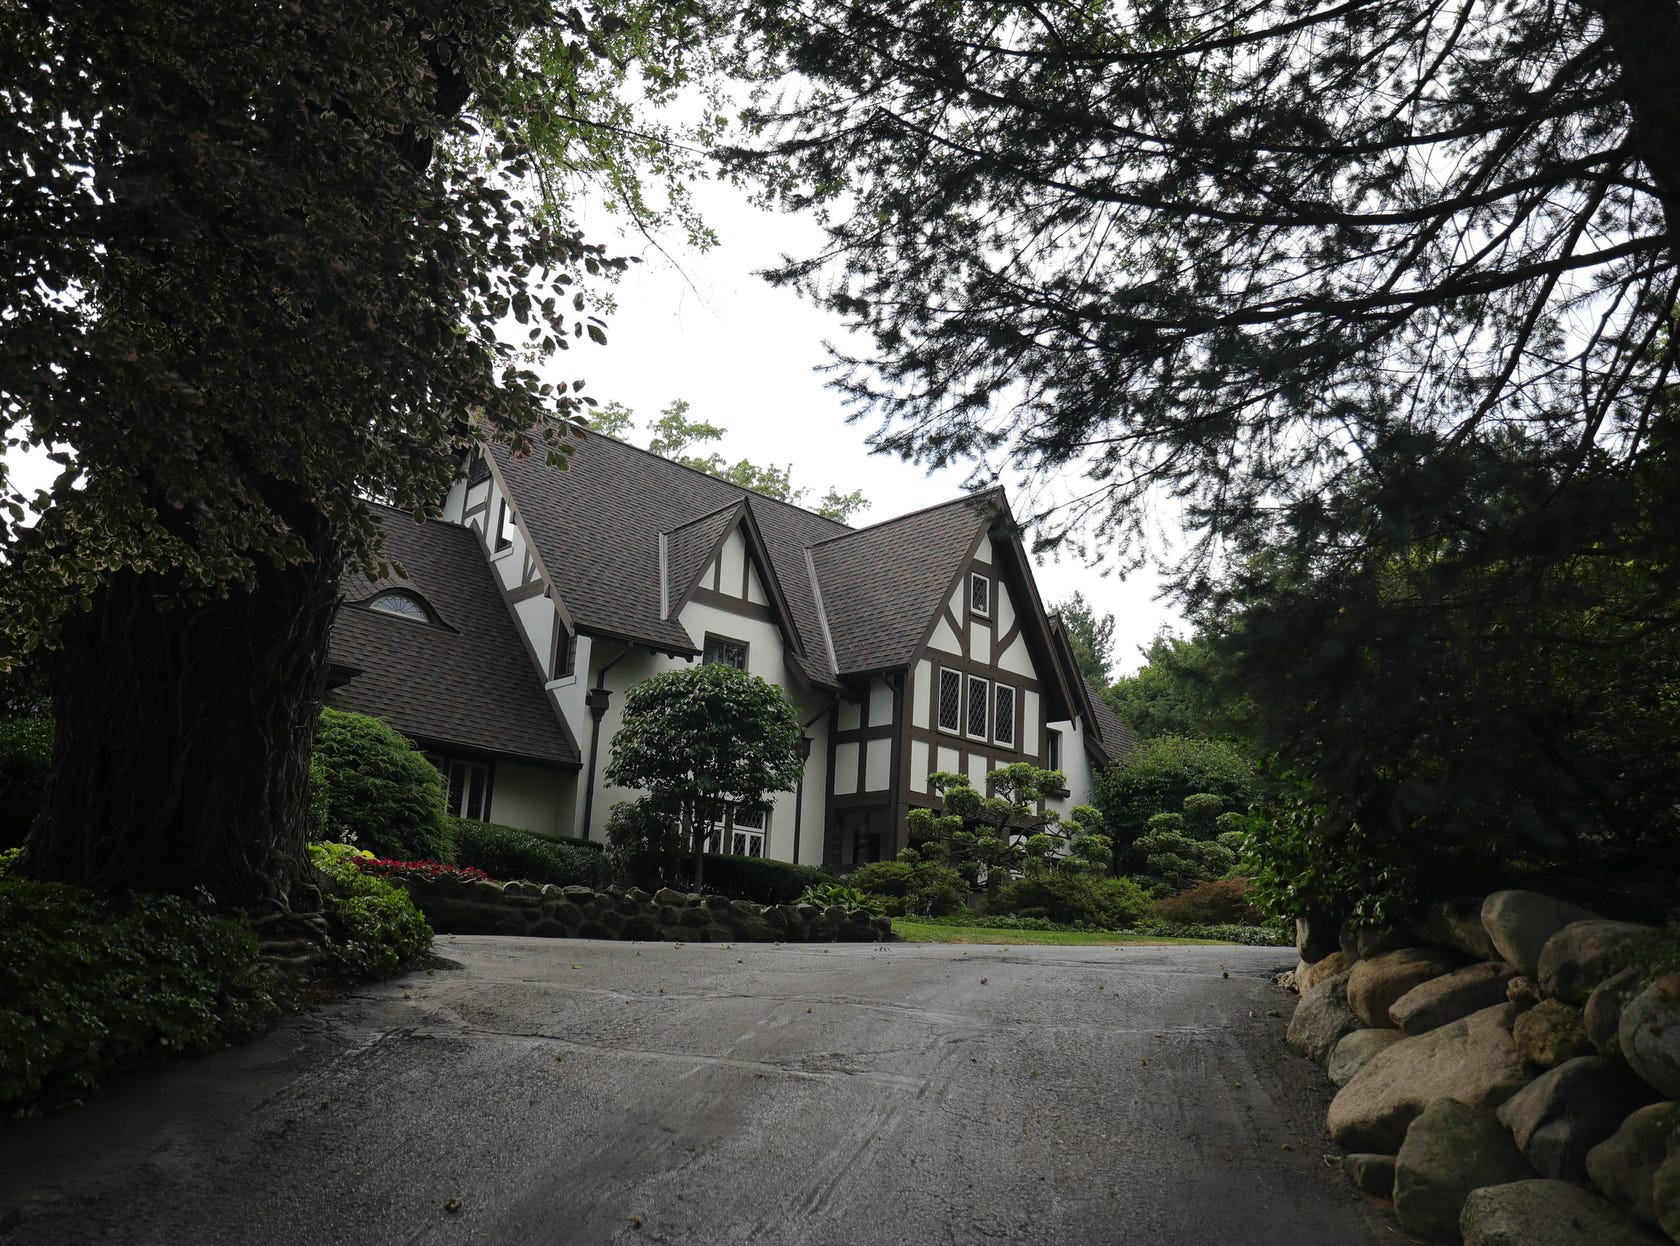 The 1908 Tudor estate was built on 23 acres and filled with luxuries like stained and leaded glass. It's the founding mansion of the upscale subdivision built around it later.